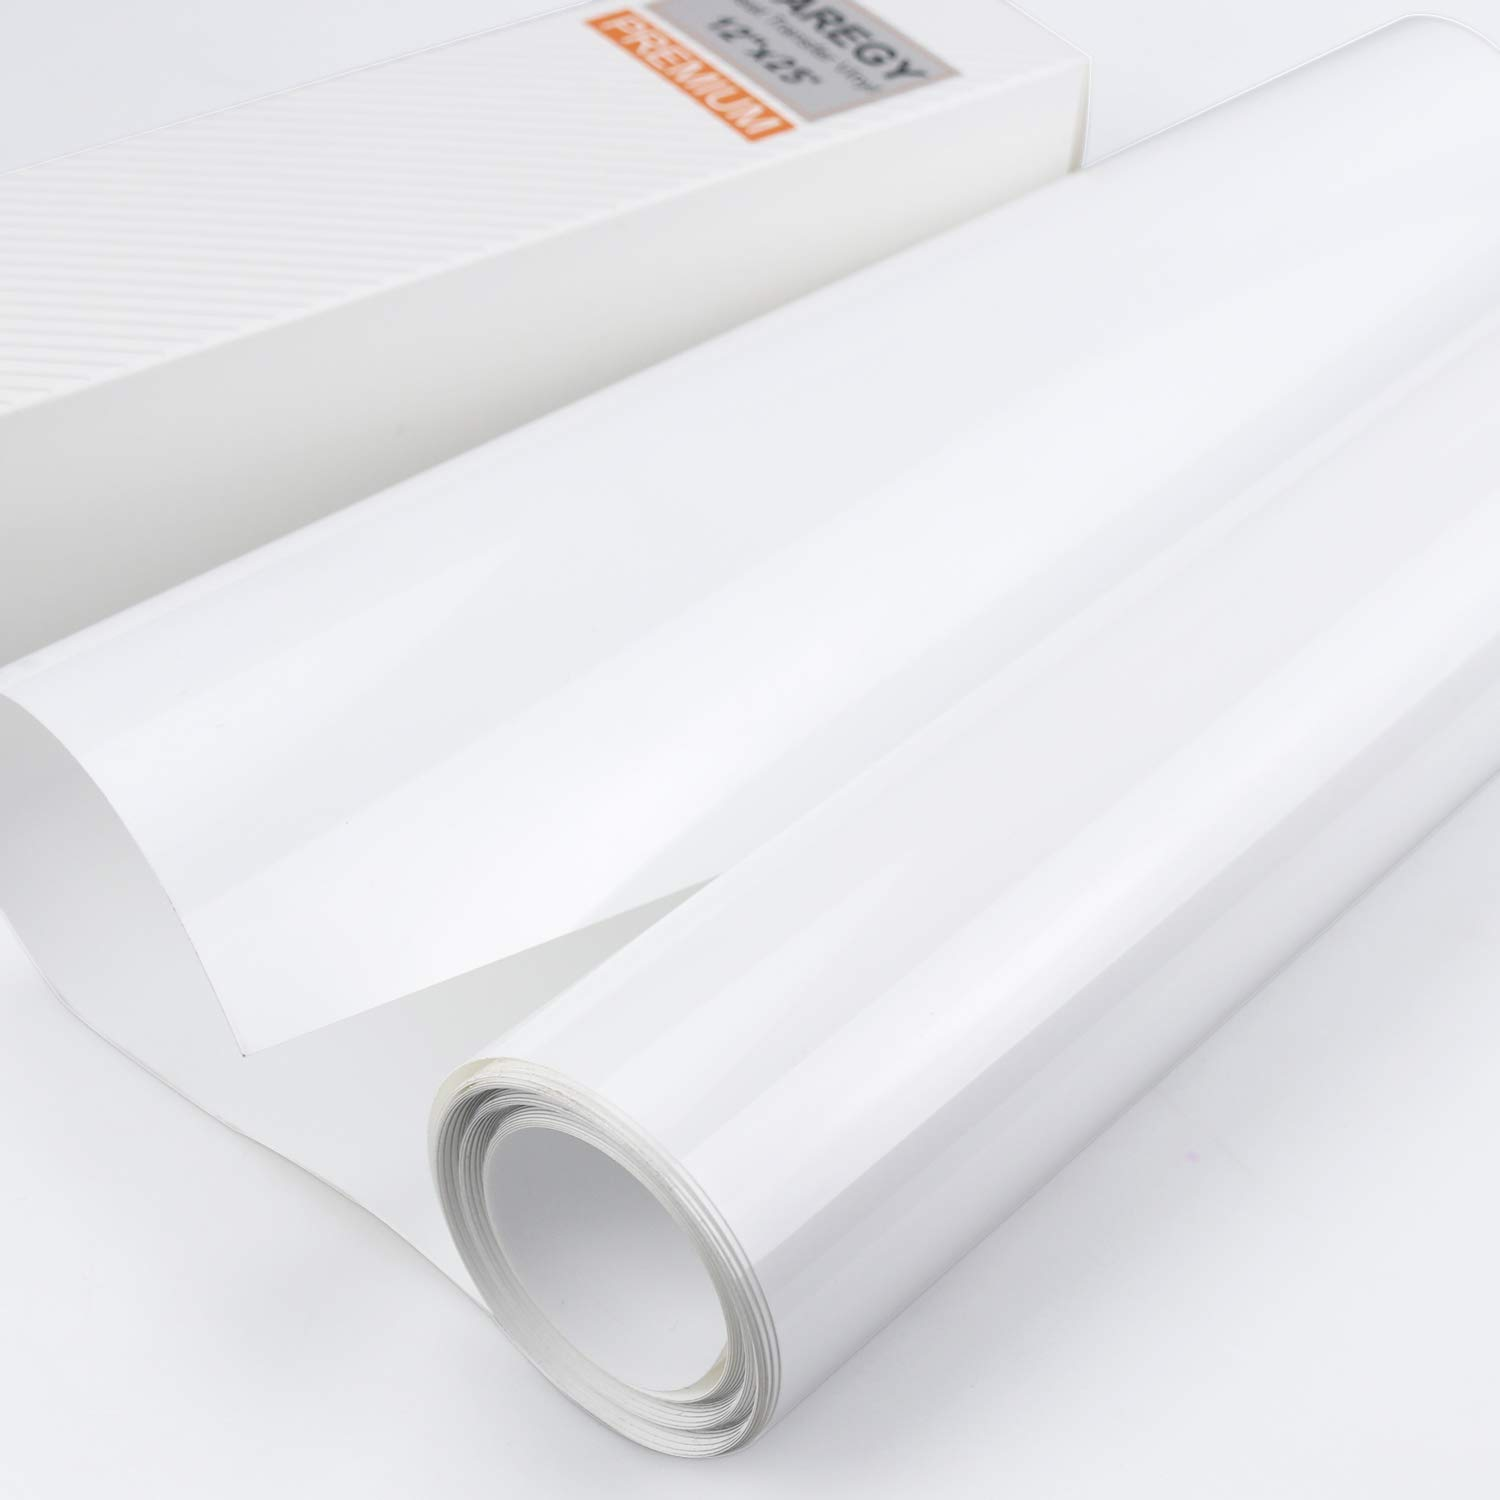 HTV 12 x 25ft Roll White Iron On Heat Transfer Vinyl